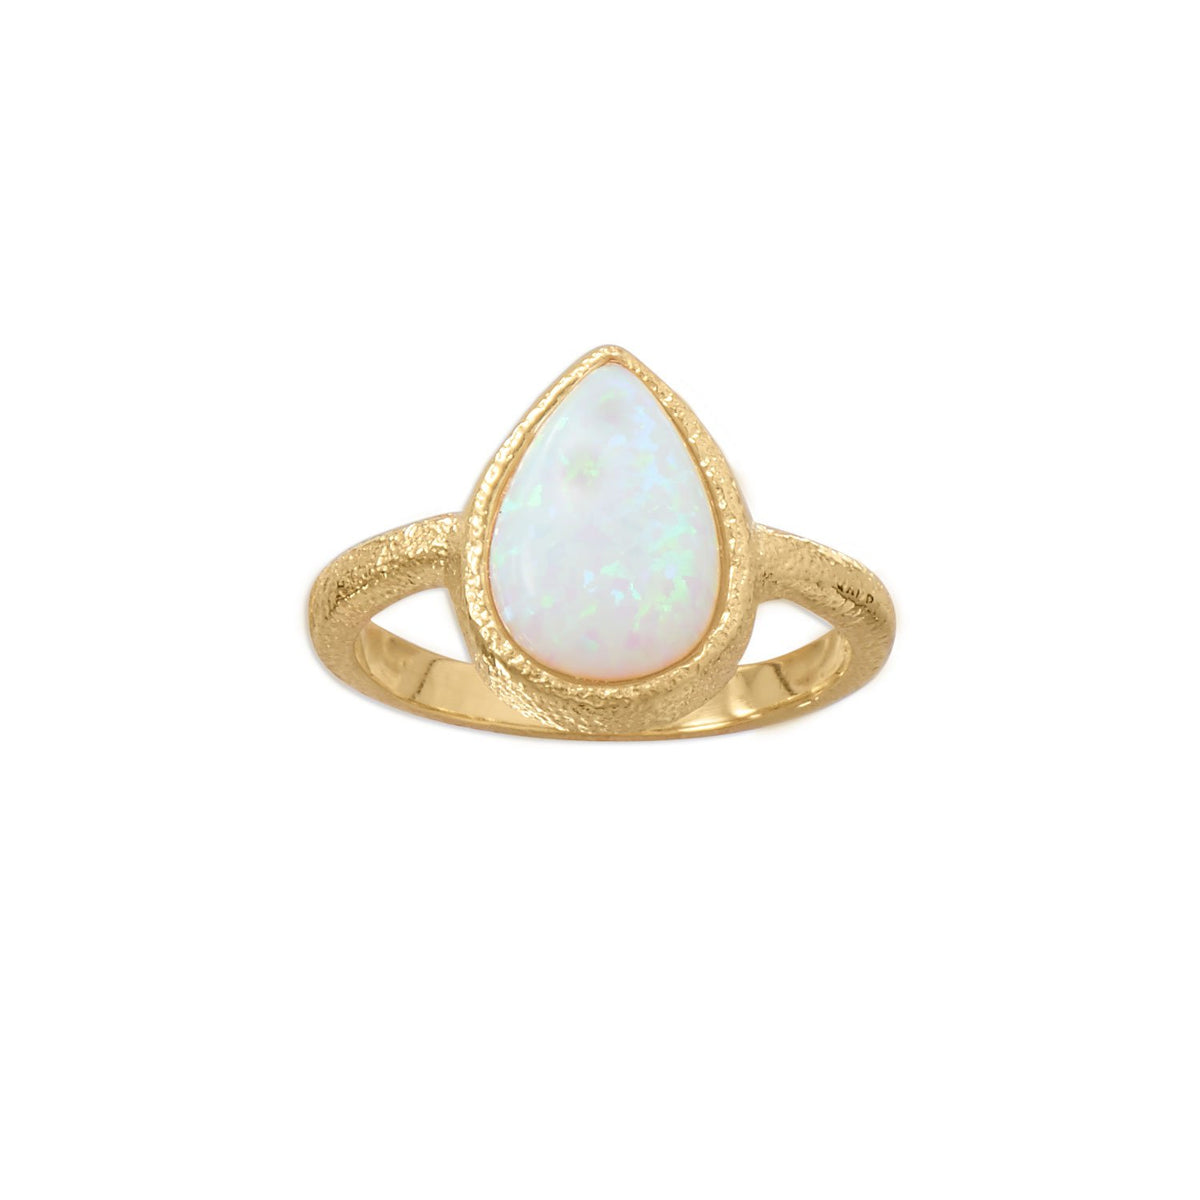 14 Karat Gold Plated Textured Pear Synthetic Opal Ring